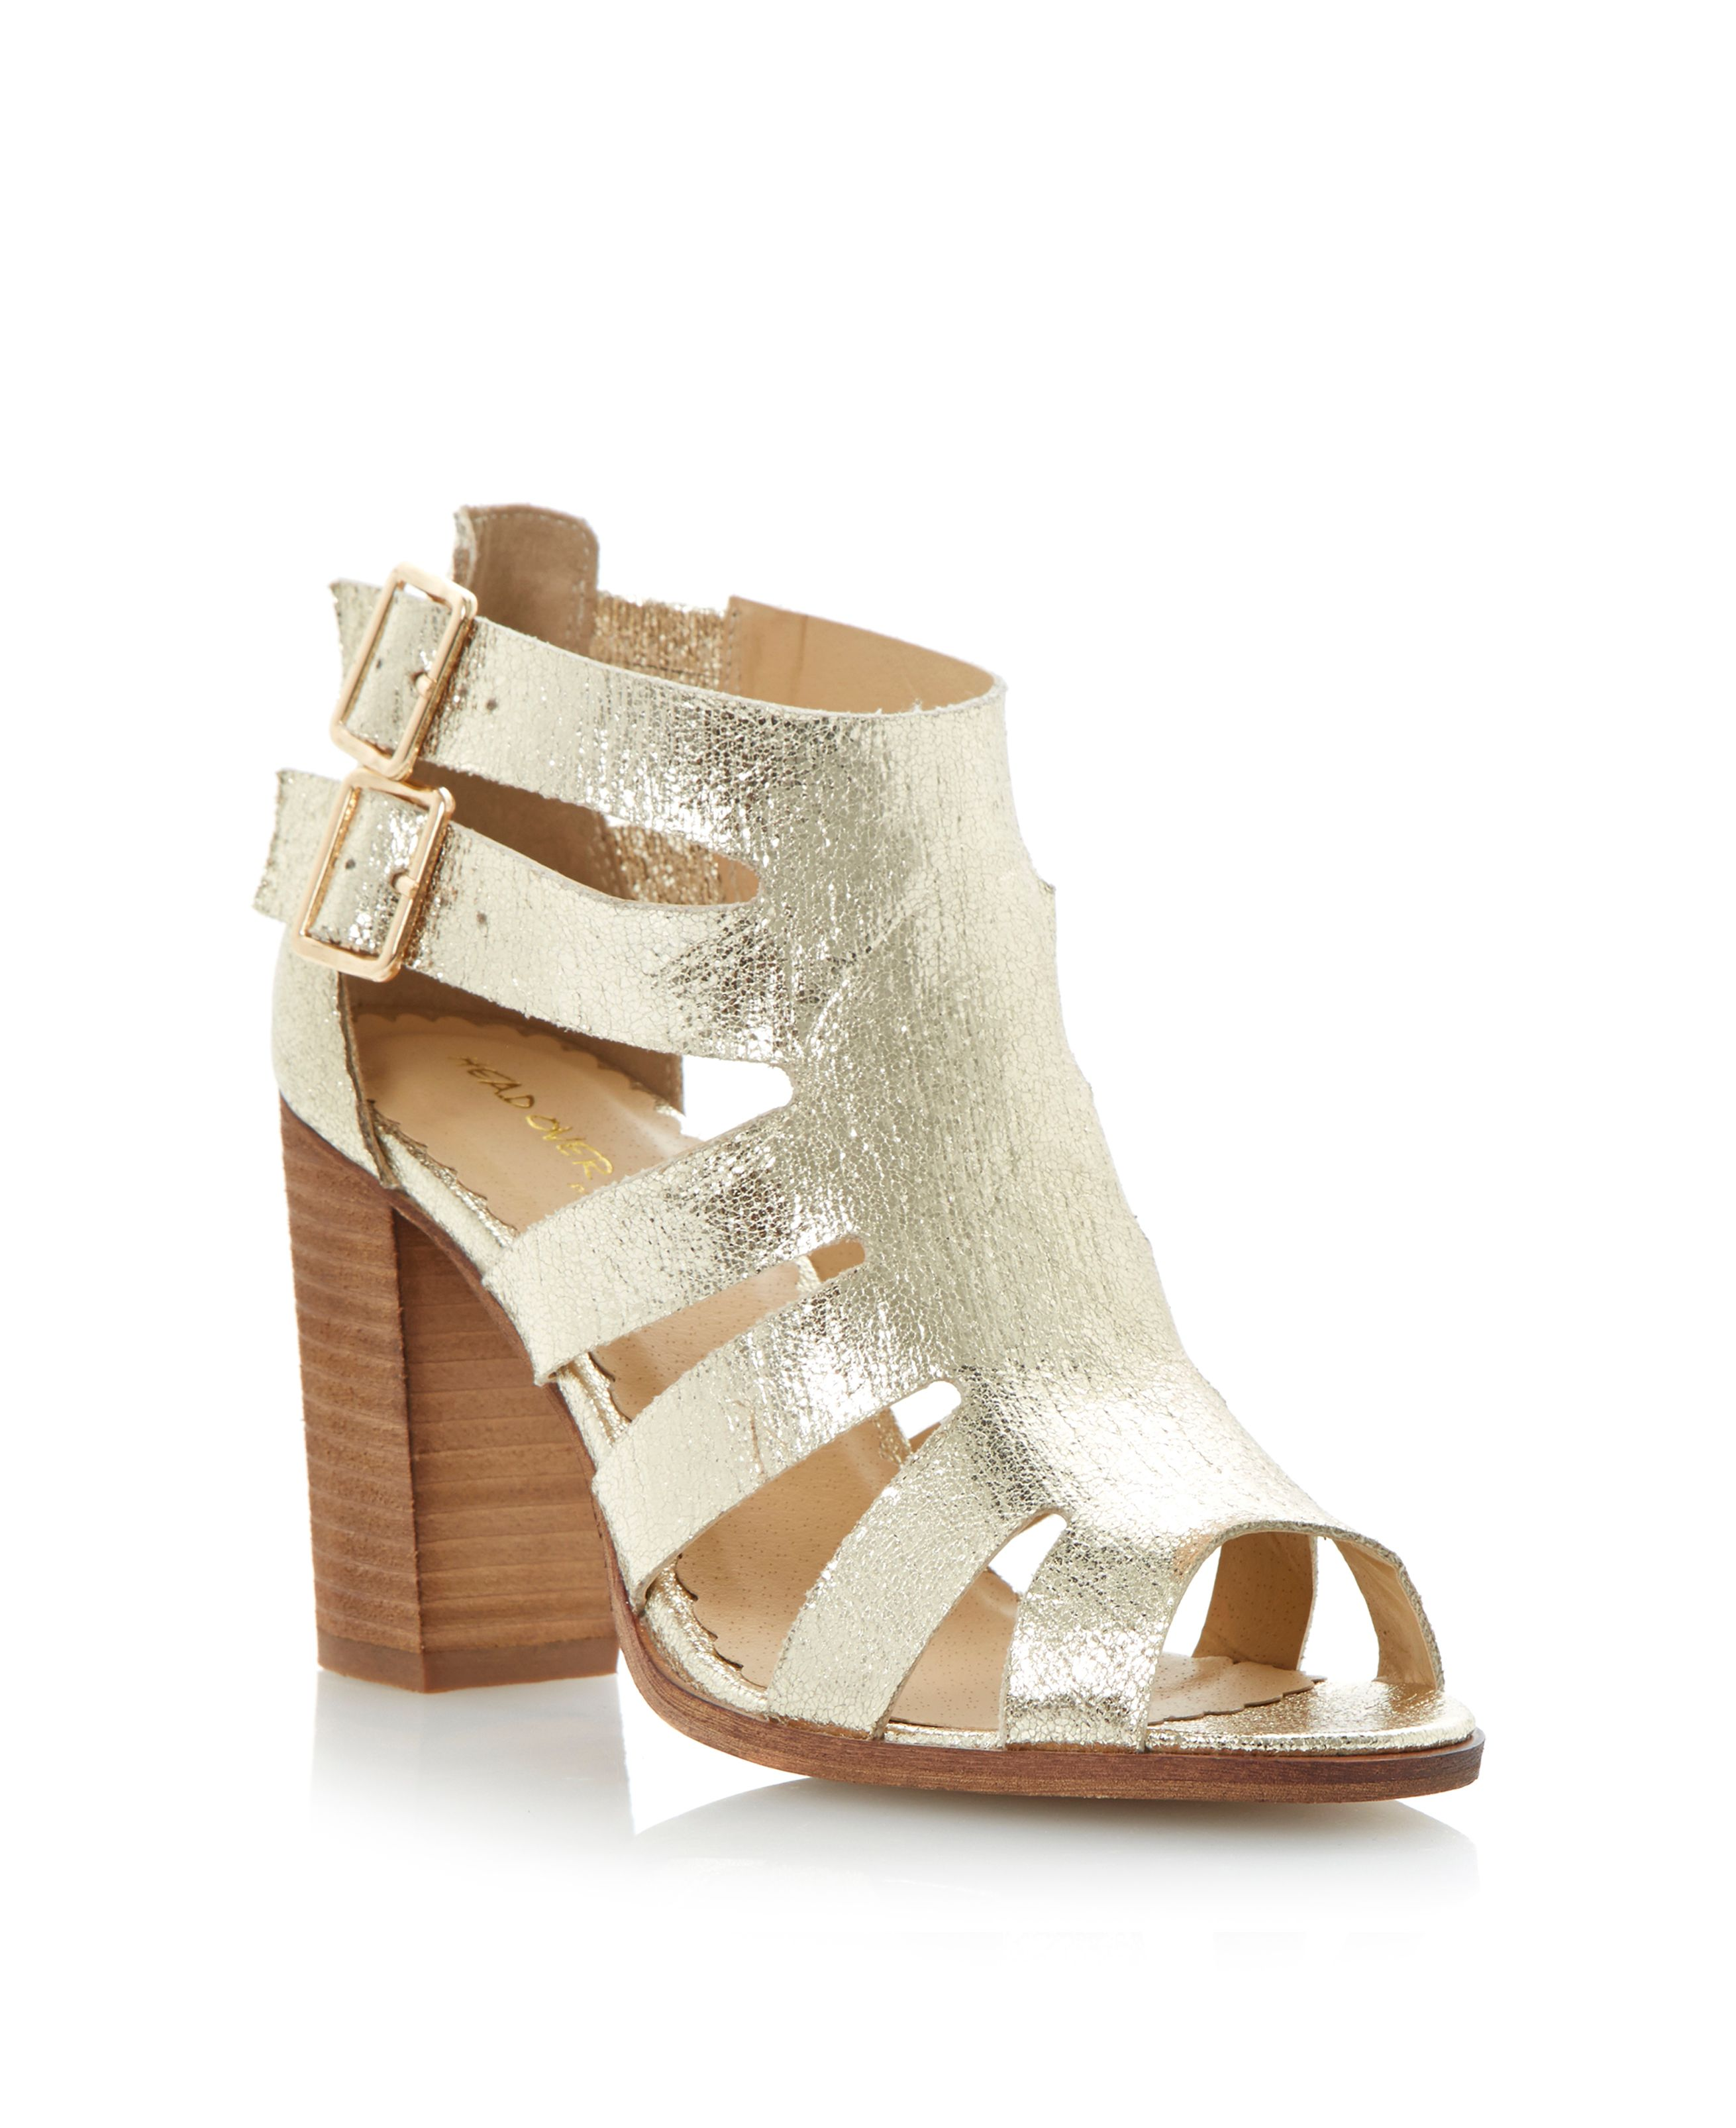 Gazelle cut out heeled gladiator sandals